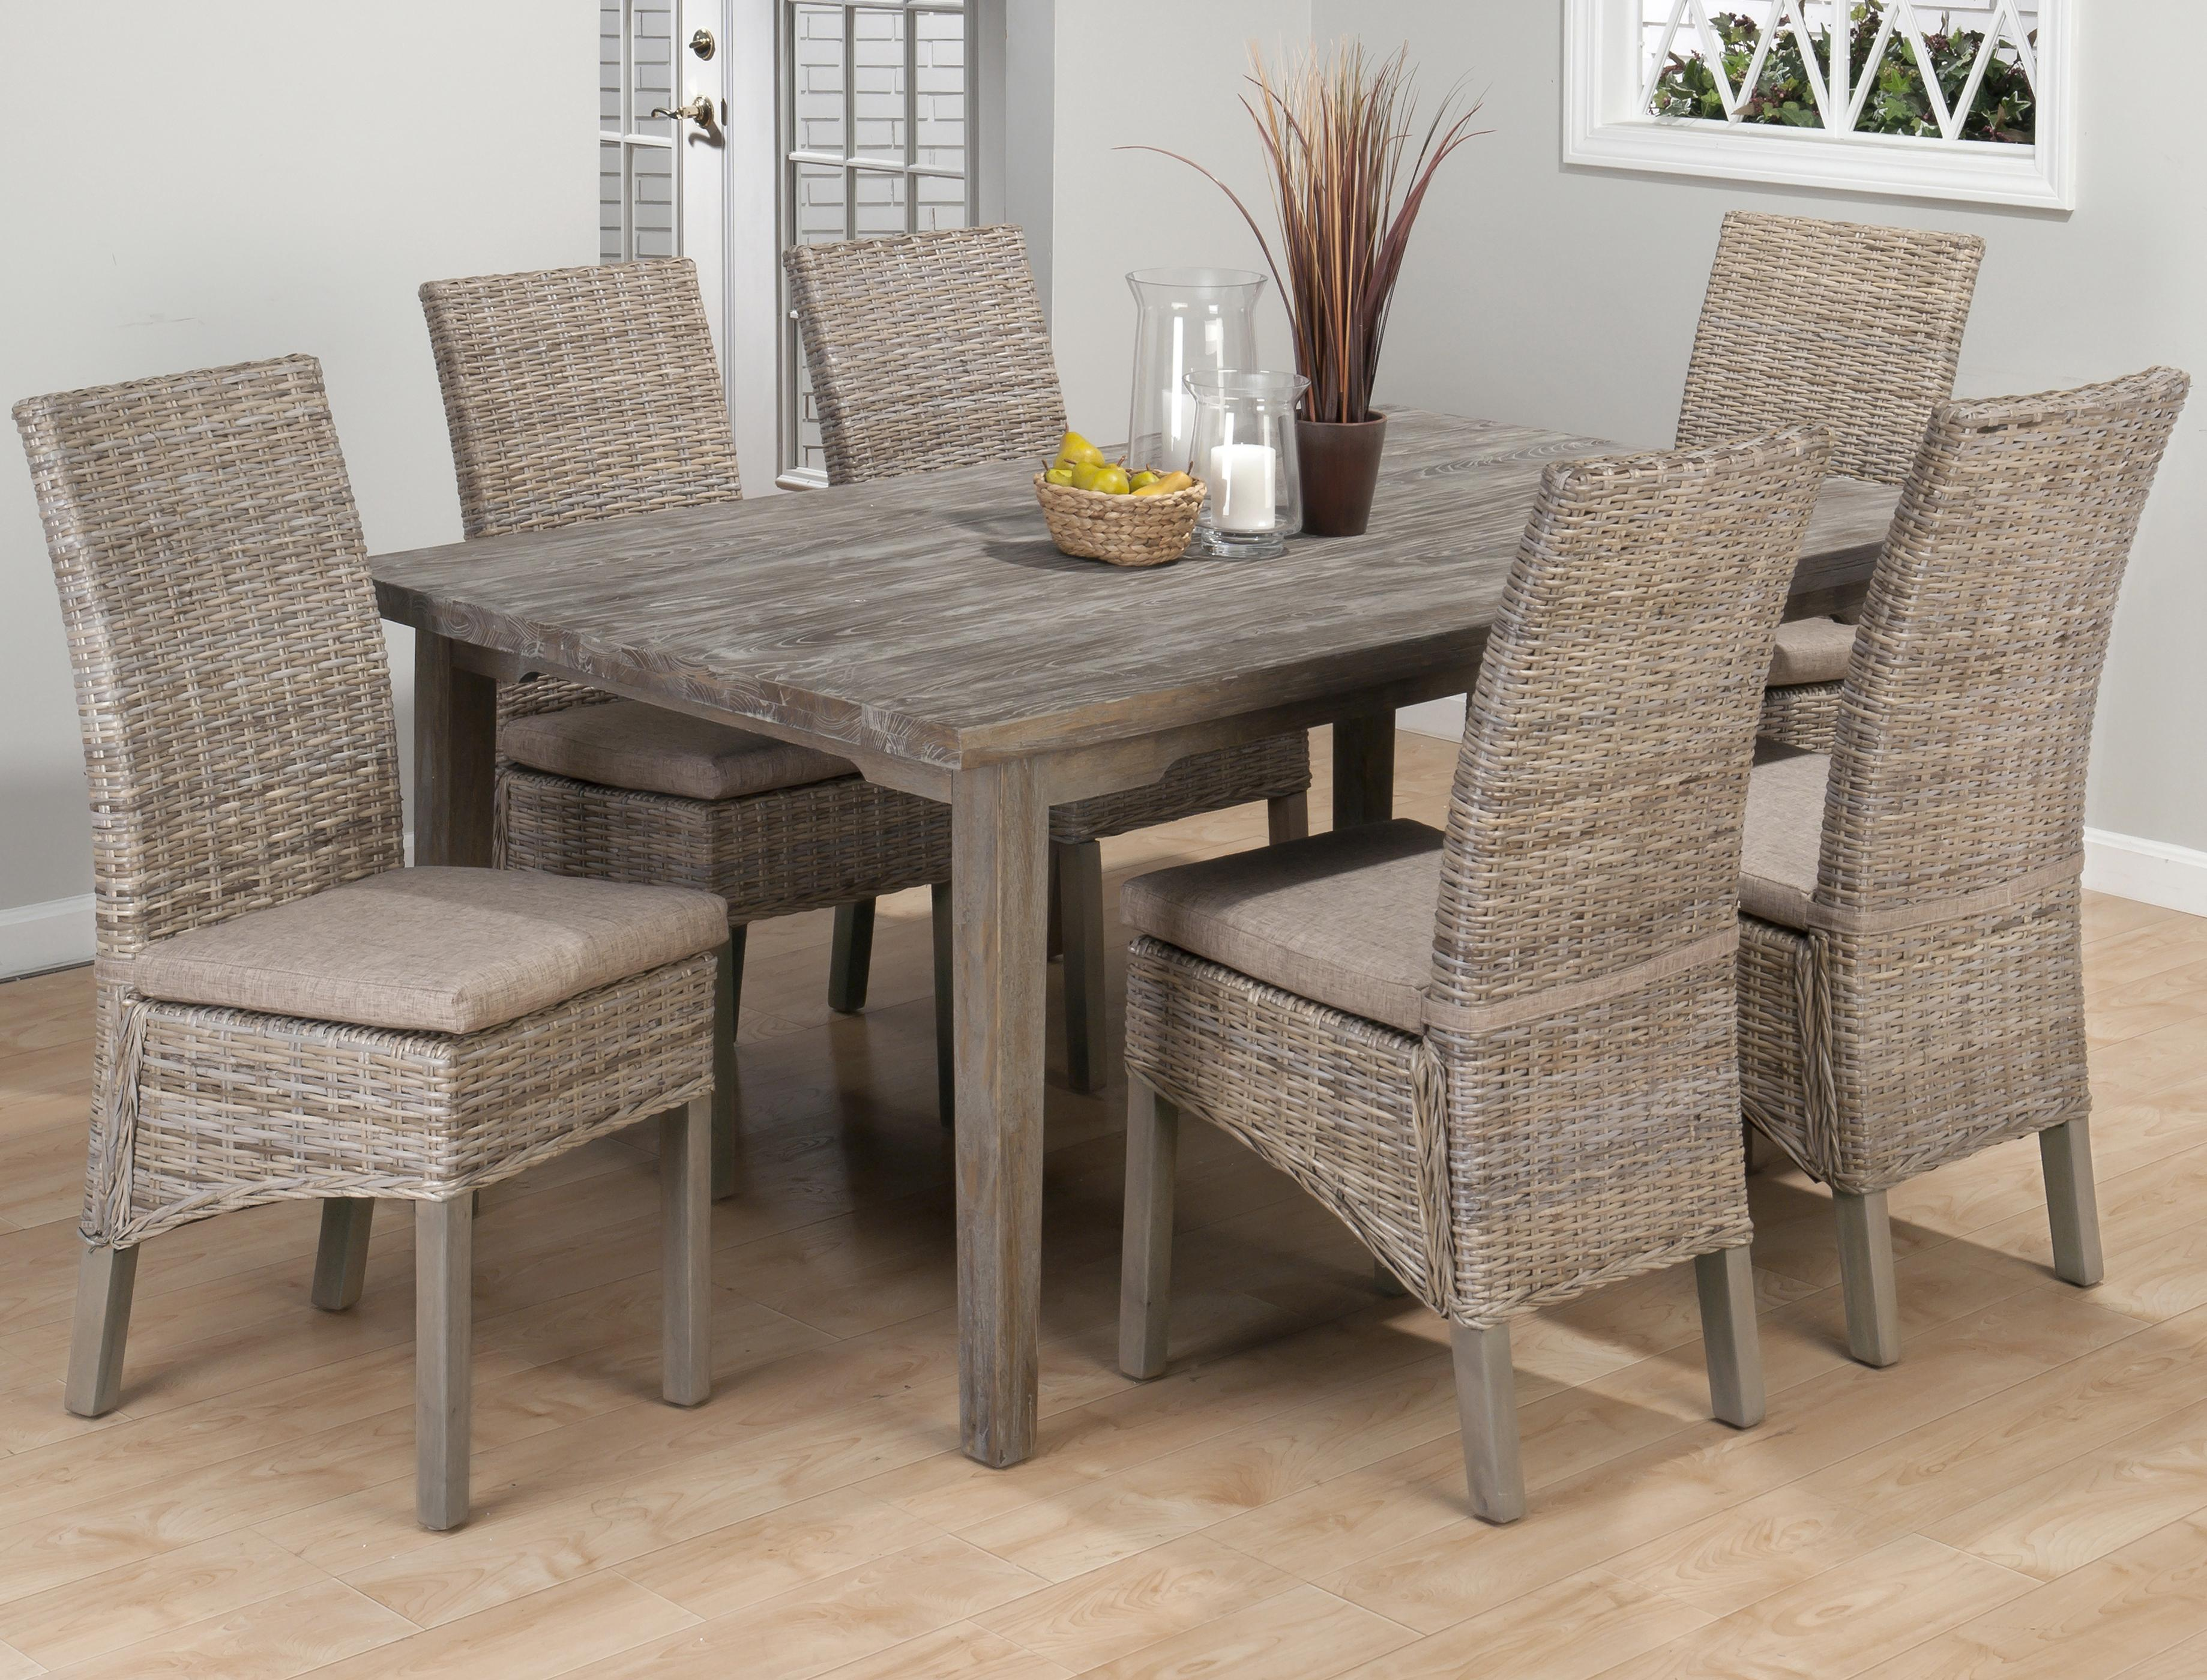 distressed wood dining table set wood kitchen table sets Distressed Dining Table Distressed Round Dining Table La France